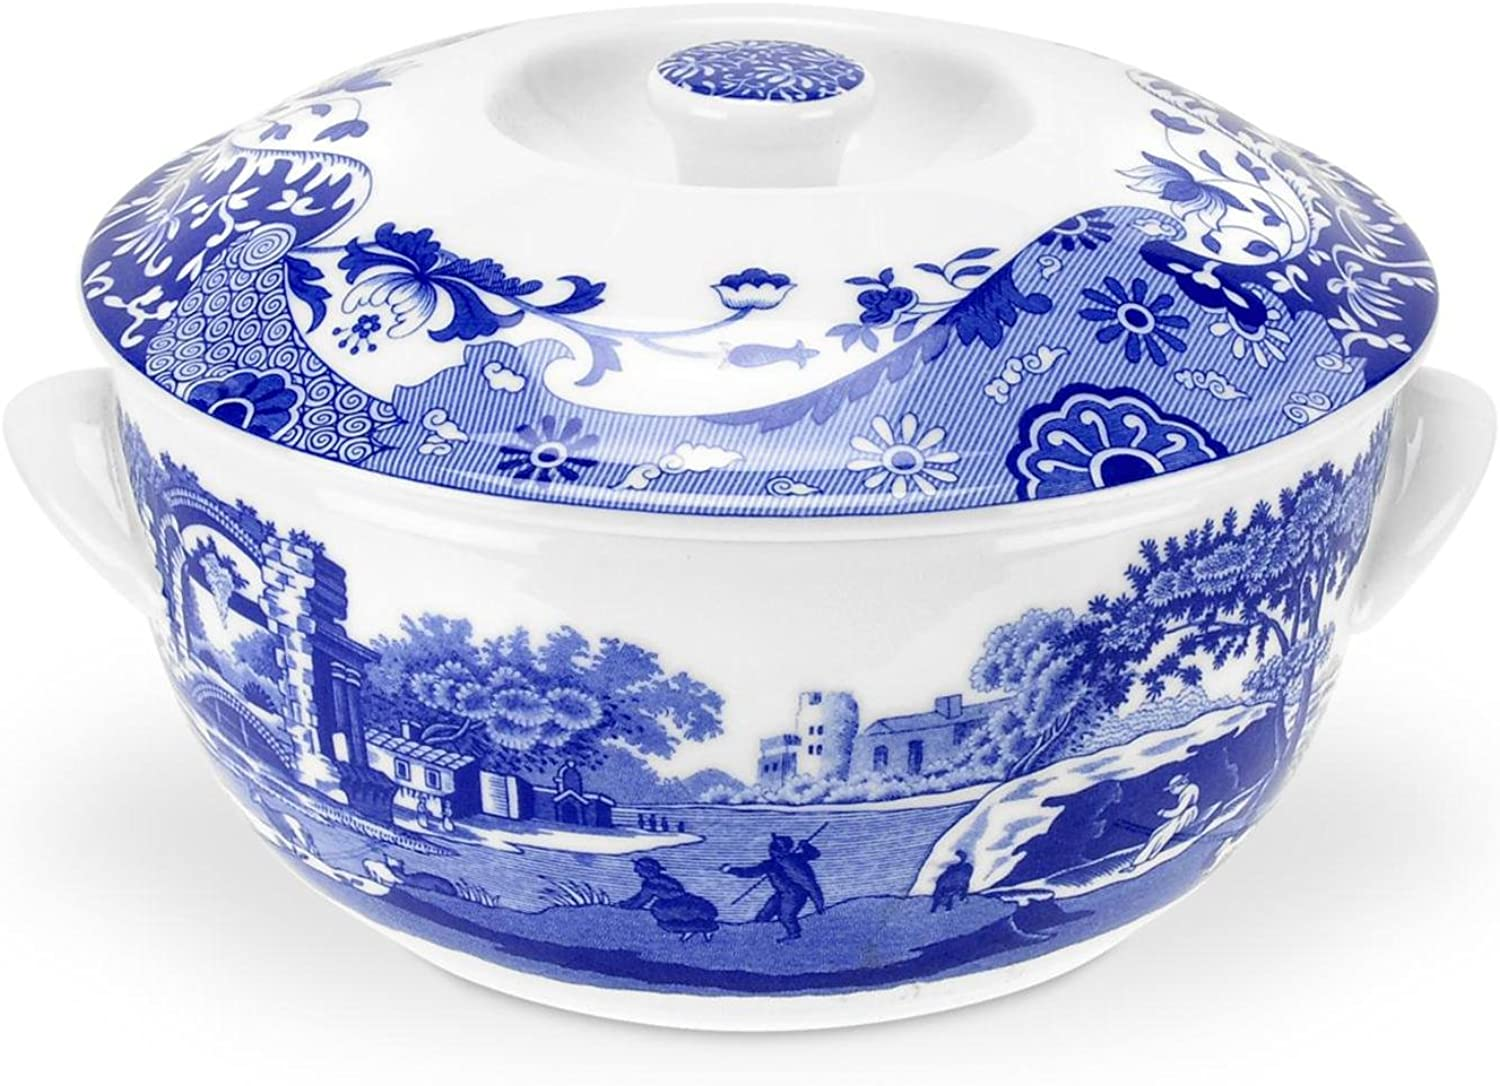 Spode bluee Italian Round Covered Deep Dish